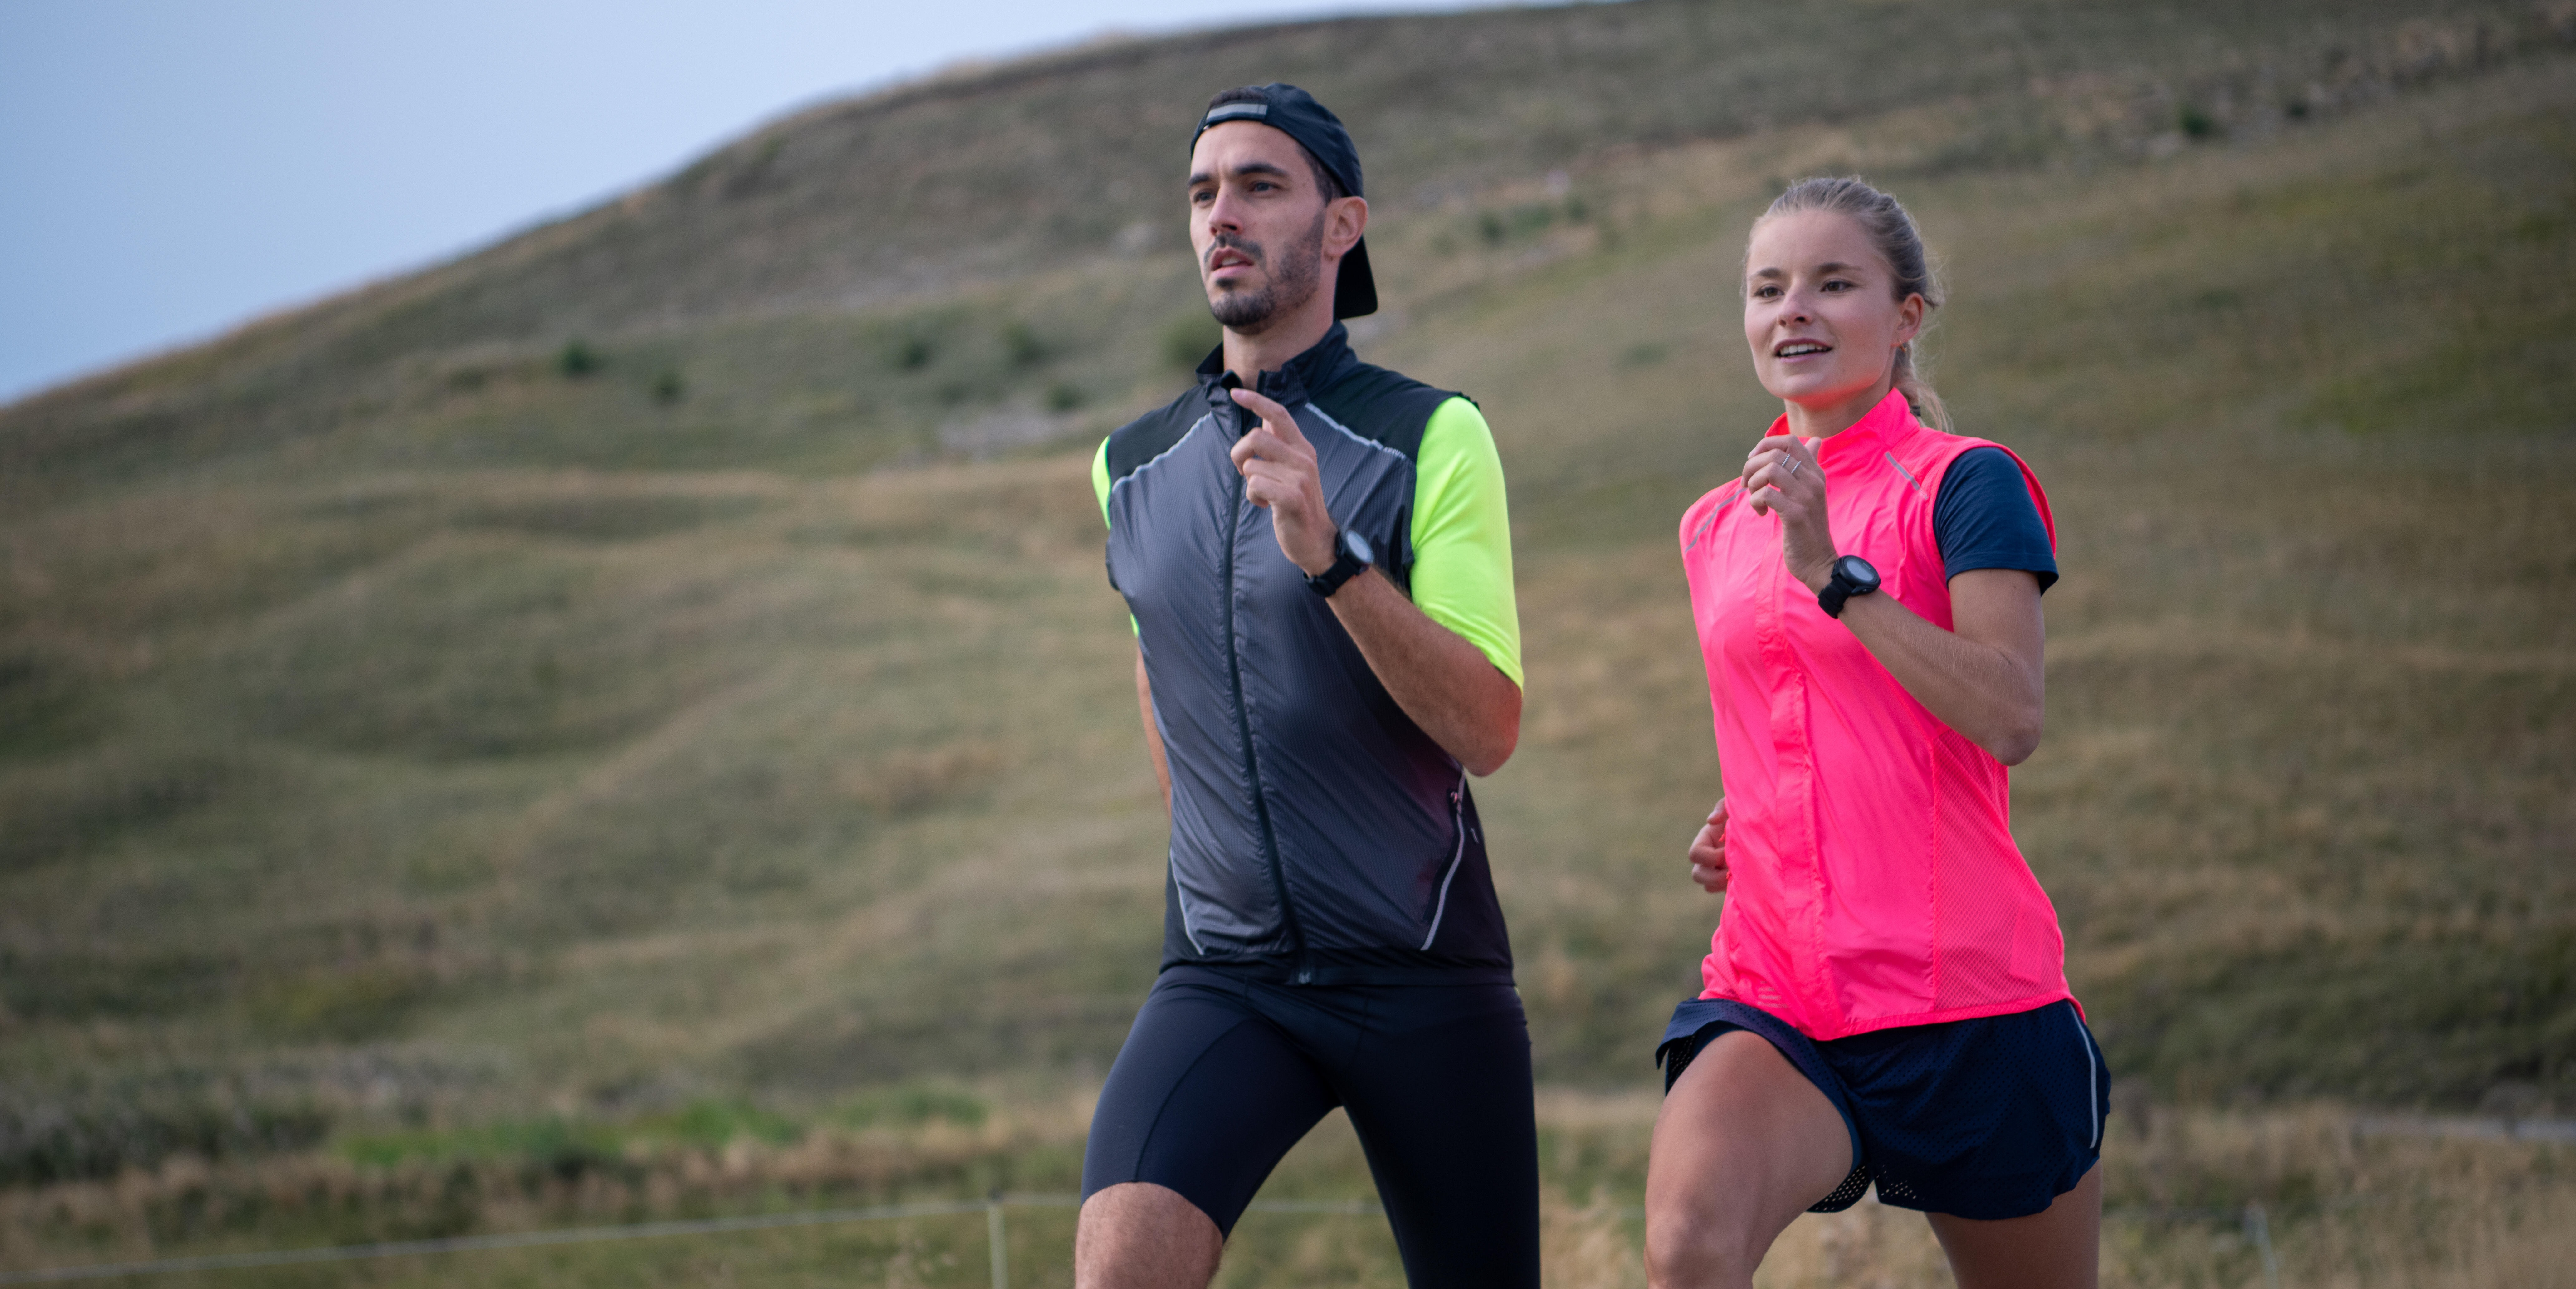 The Running Channel's Video Guide To Everything You Need To Know About Running